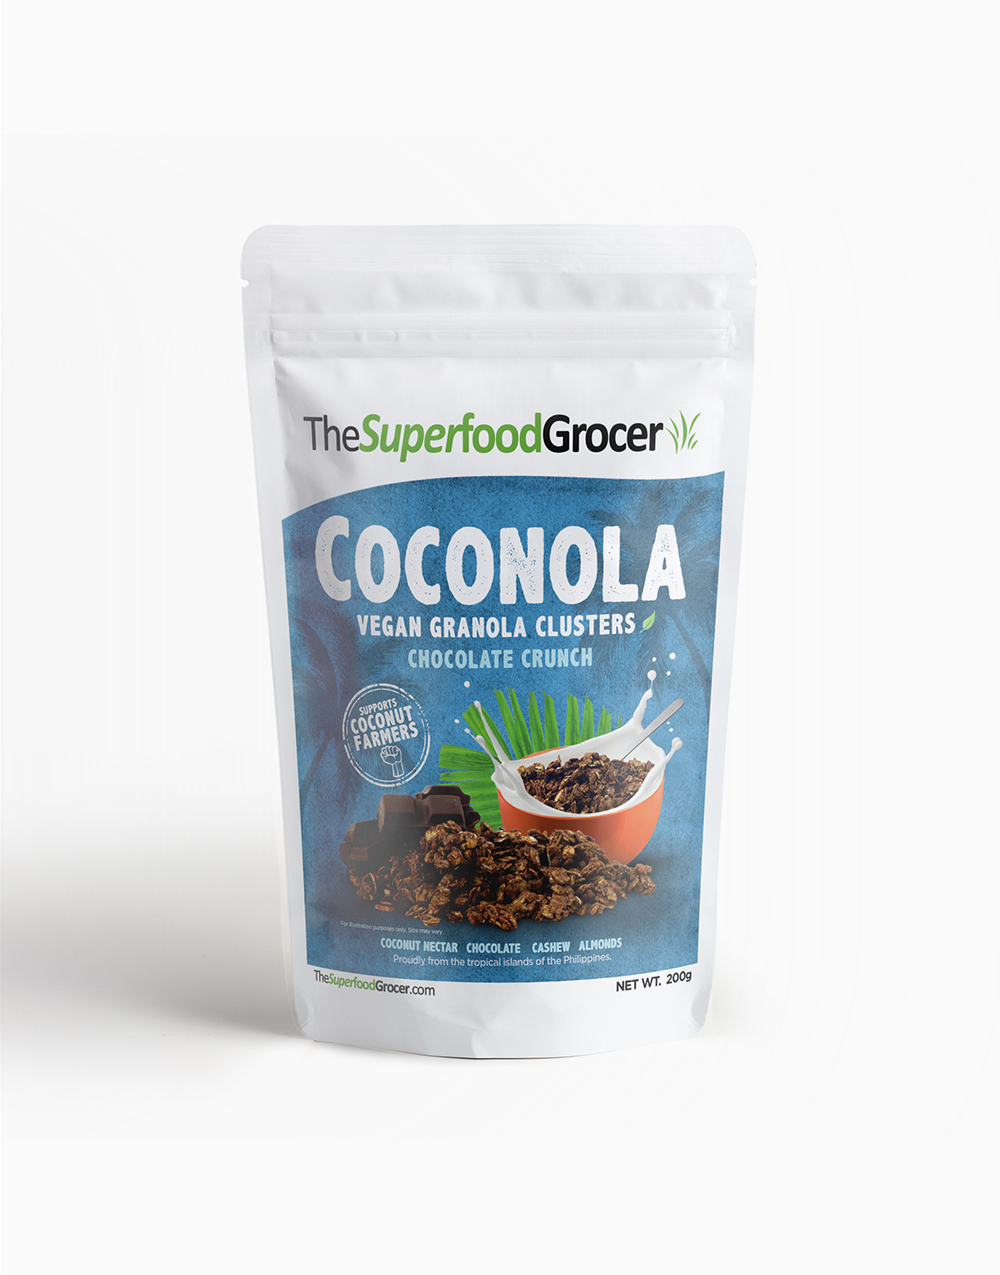 Coconola Vegan Granola Clusters Chocolate Crunch (200g) by The Superfood Grocer